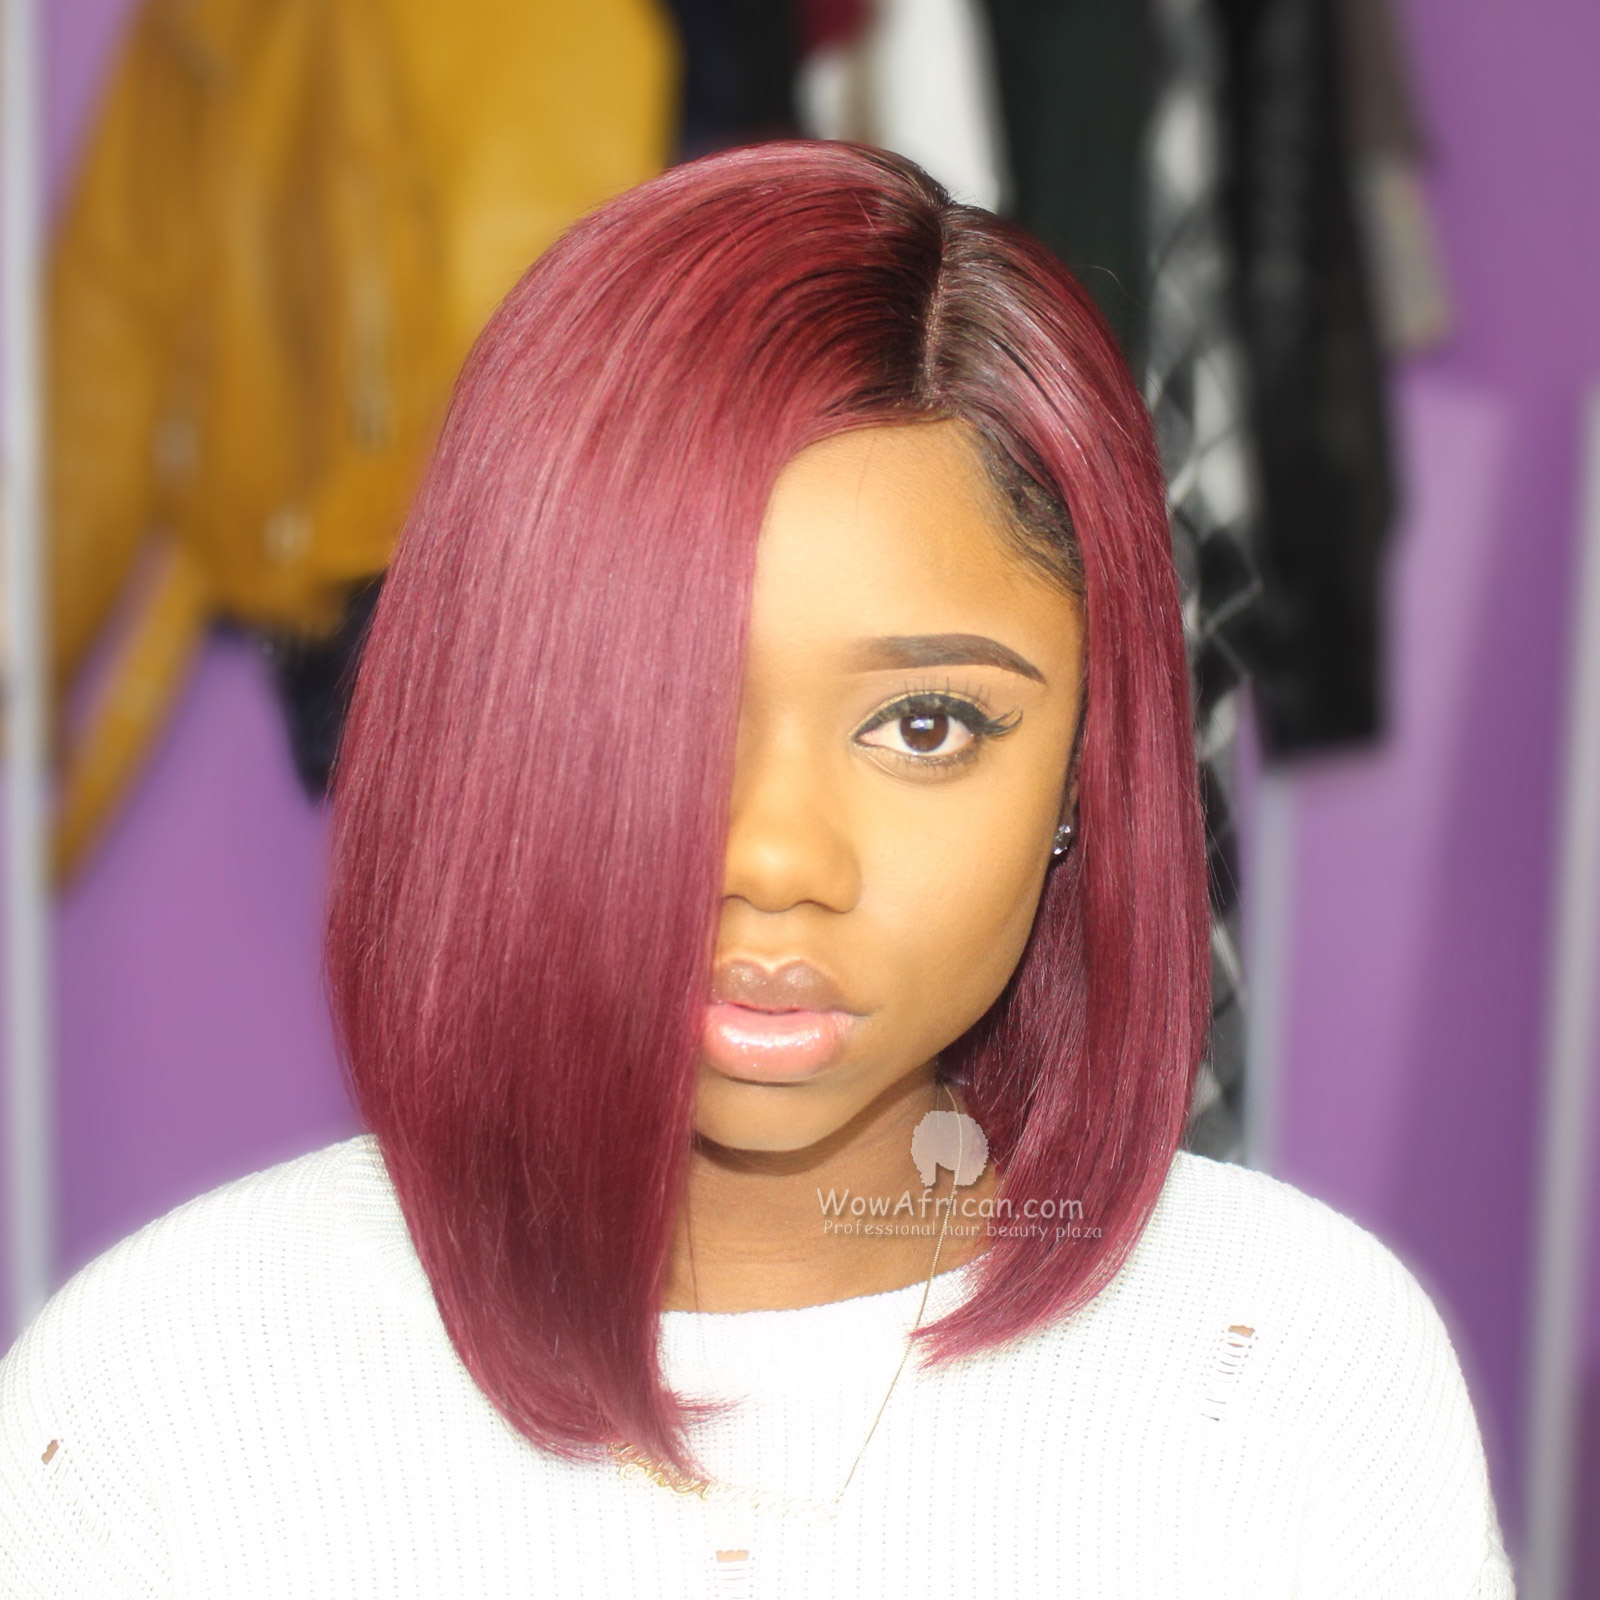 Bob Wig Frontal Customer Brazilian Virgin Hair Weave Photos Customer Clip